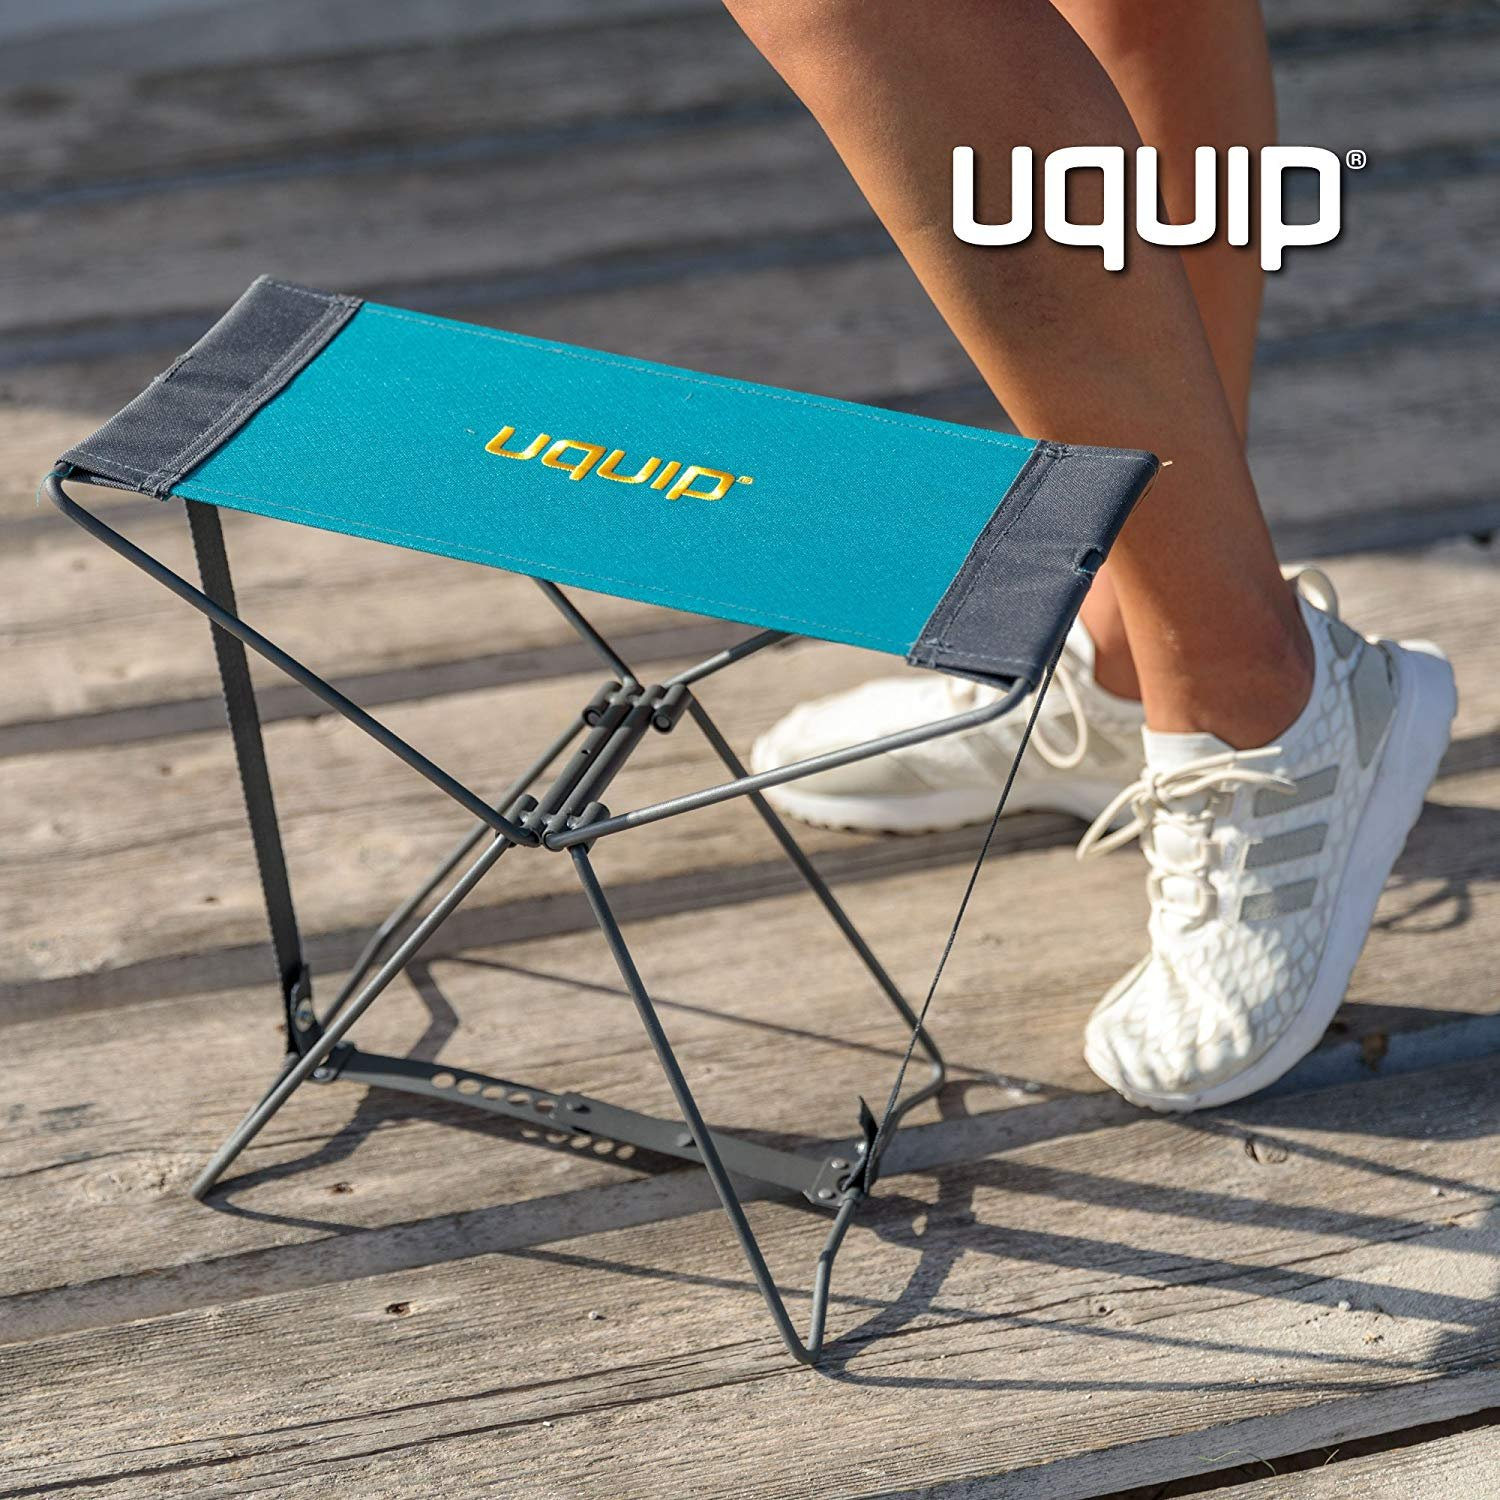 Uquip Portable Folding Stool Fancy for Camping and Sports - Petrol/Gray